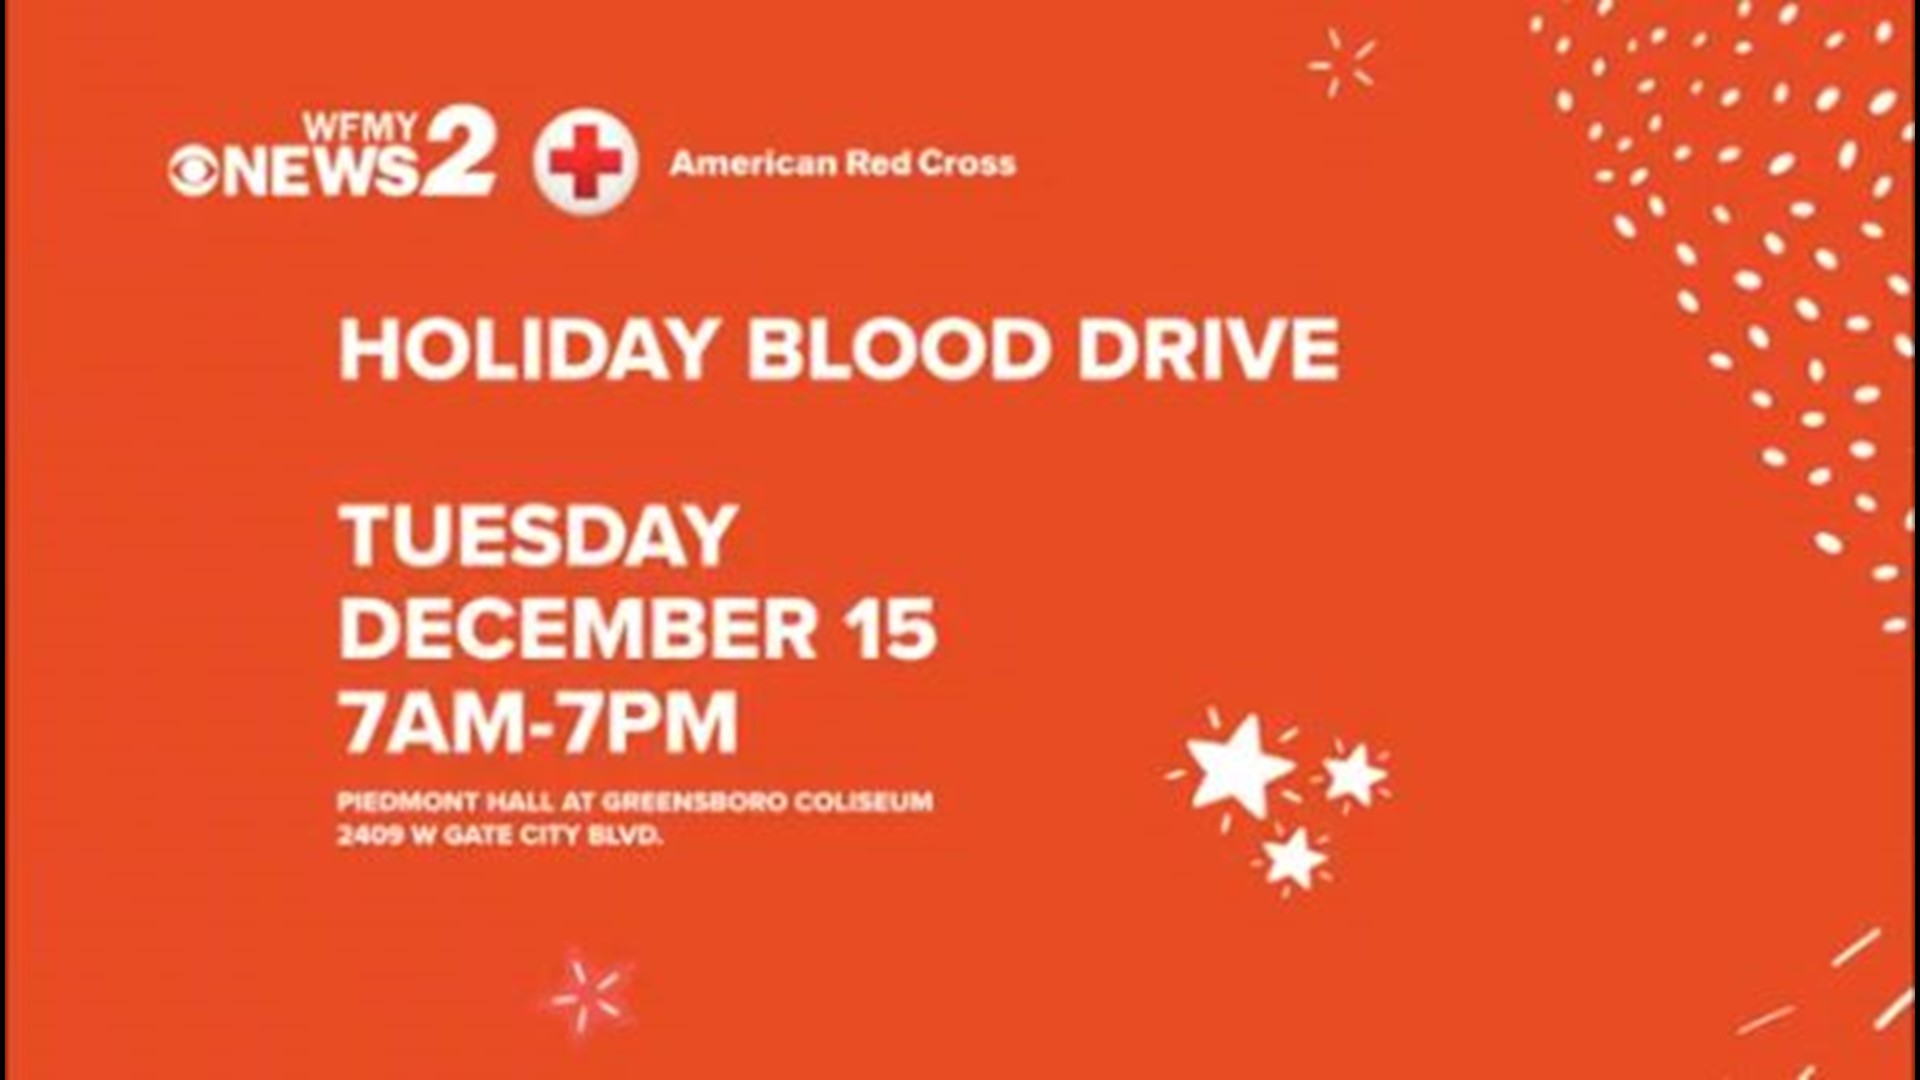 Wfmy News 2 Holiday Blood Drive On Tuesday Dec 15 Wfmynews2 Com